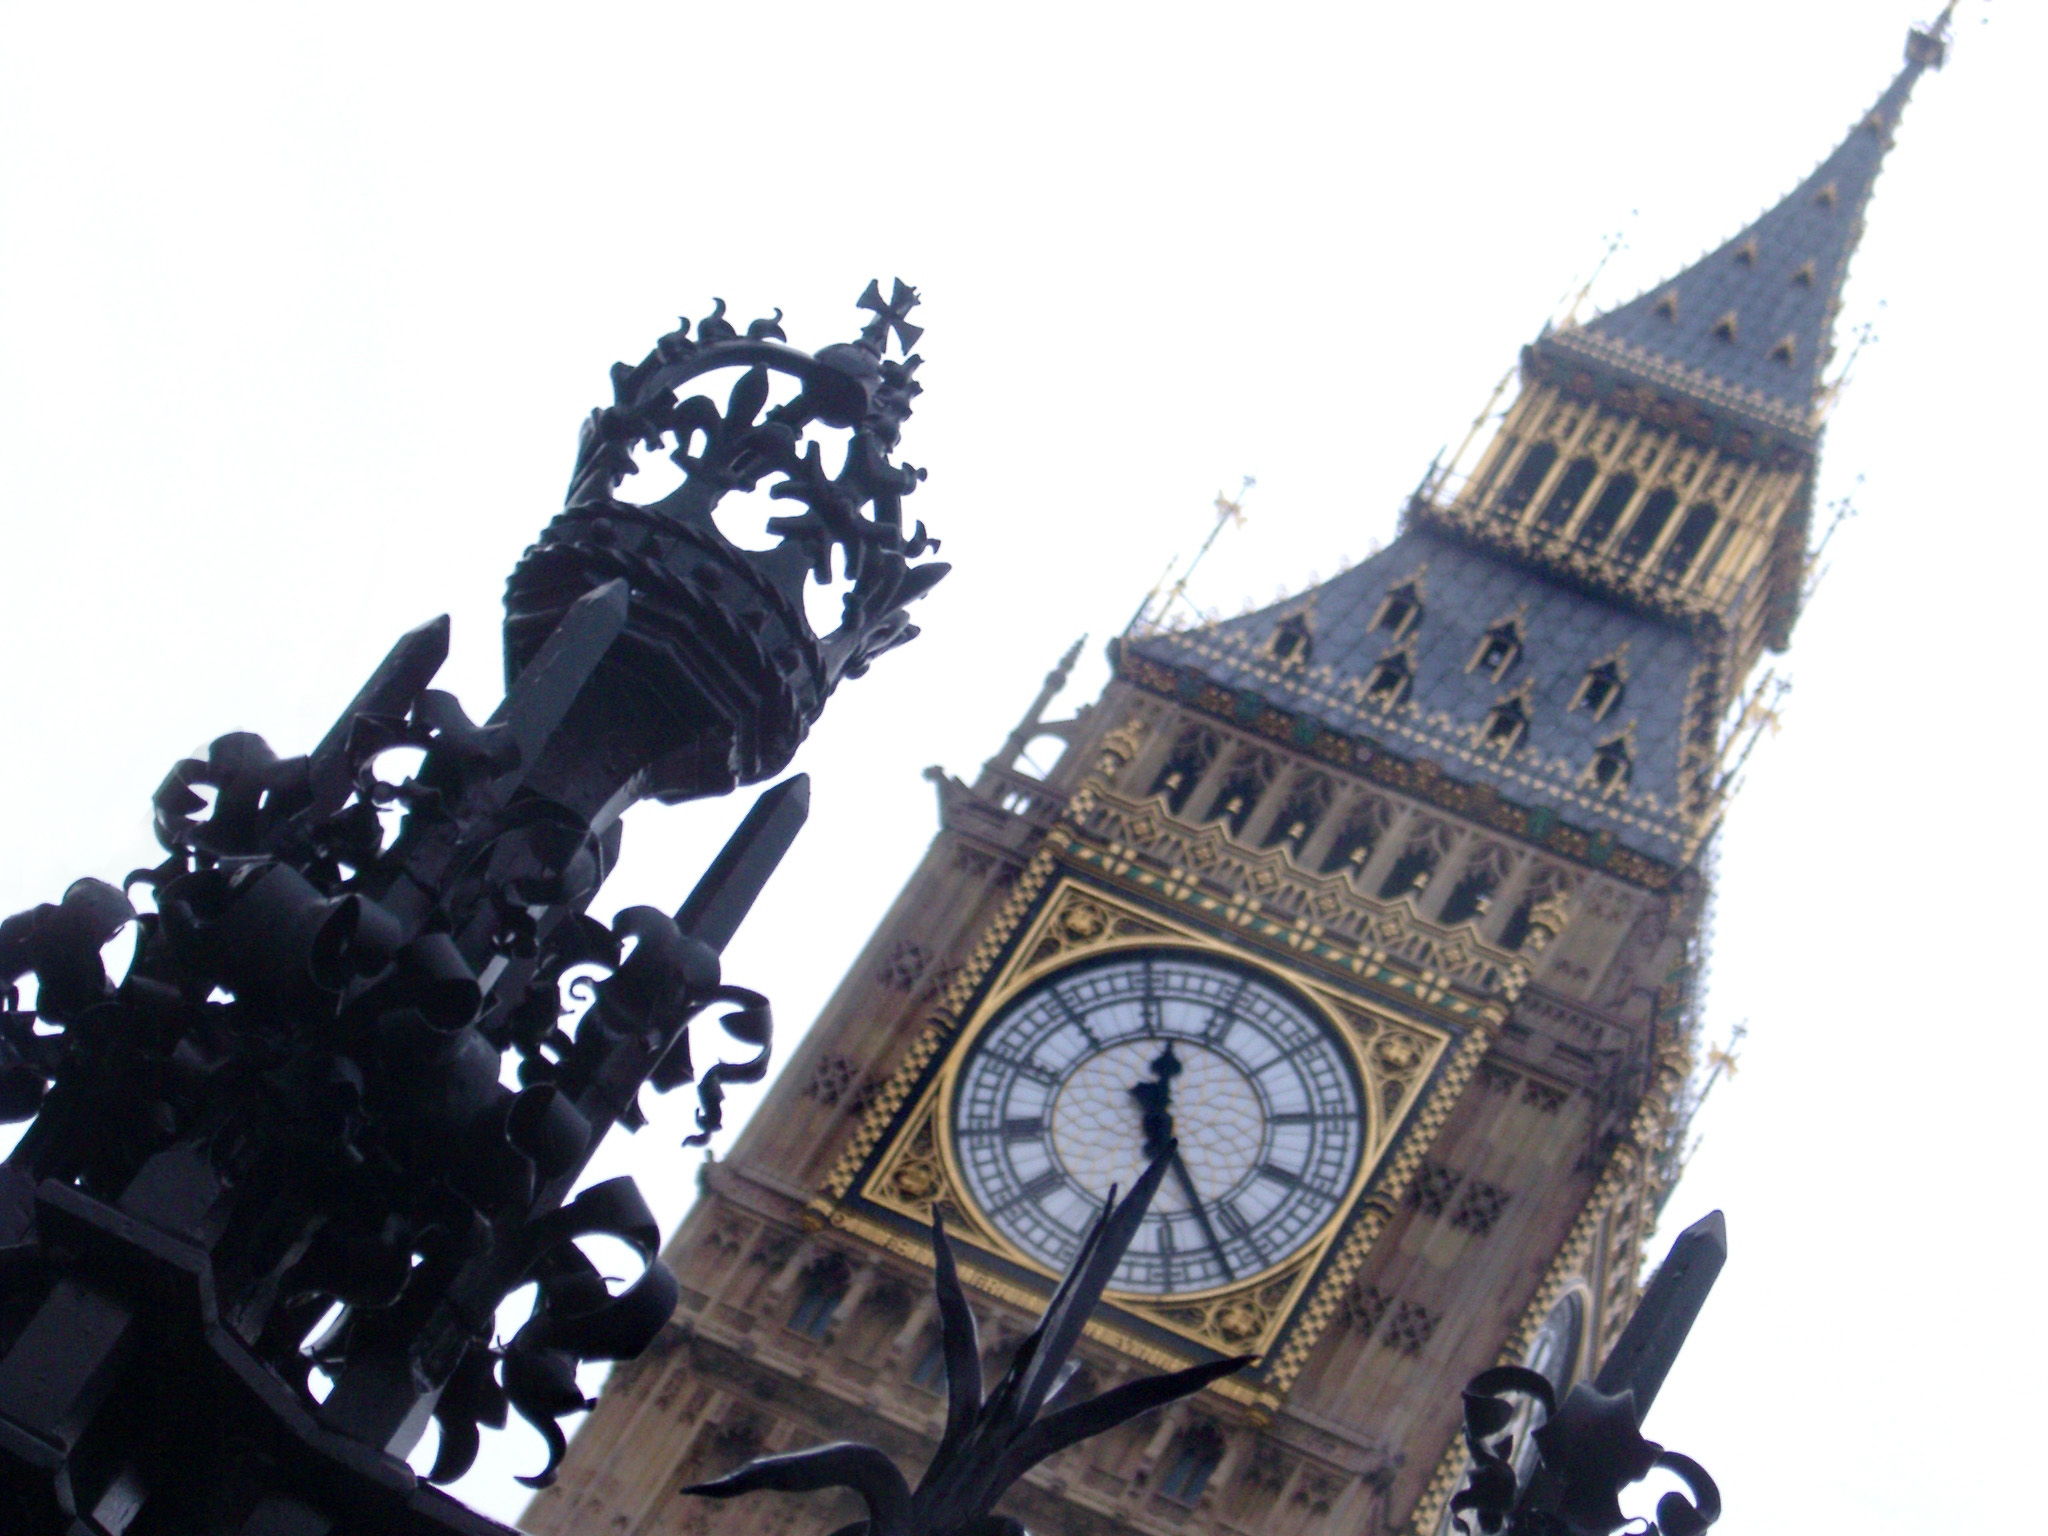 Tilted angle view of ornate wrought iron work and the clock face of Big Ben, the clock tower for the old palace of Westminster, now an iconic landmark and tourist attraction